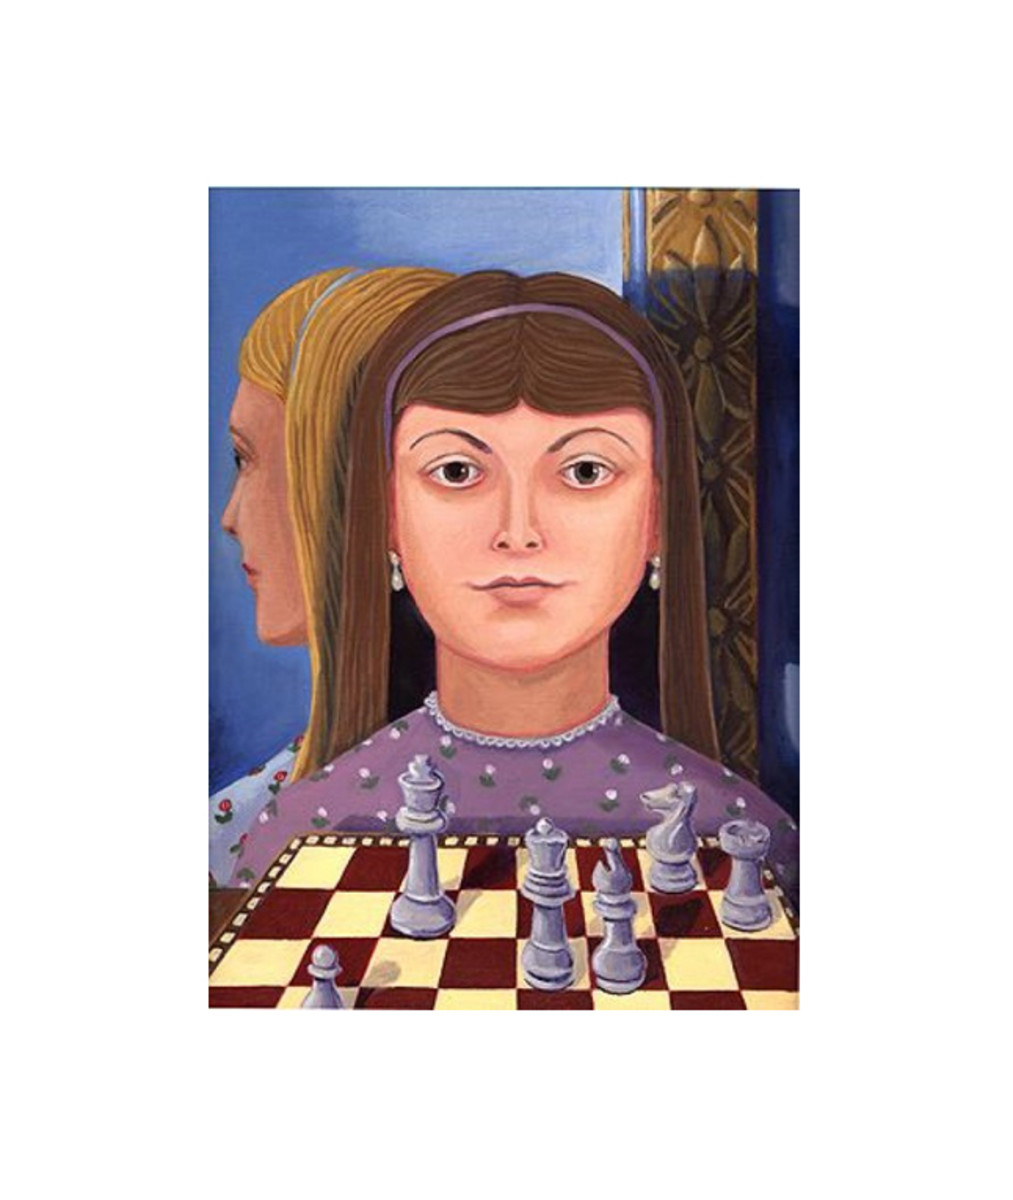 """The Chess Set (Portrait of Alice Liddell)"" by Sheryl Humphrey"